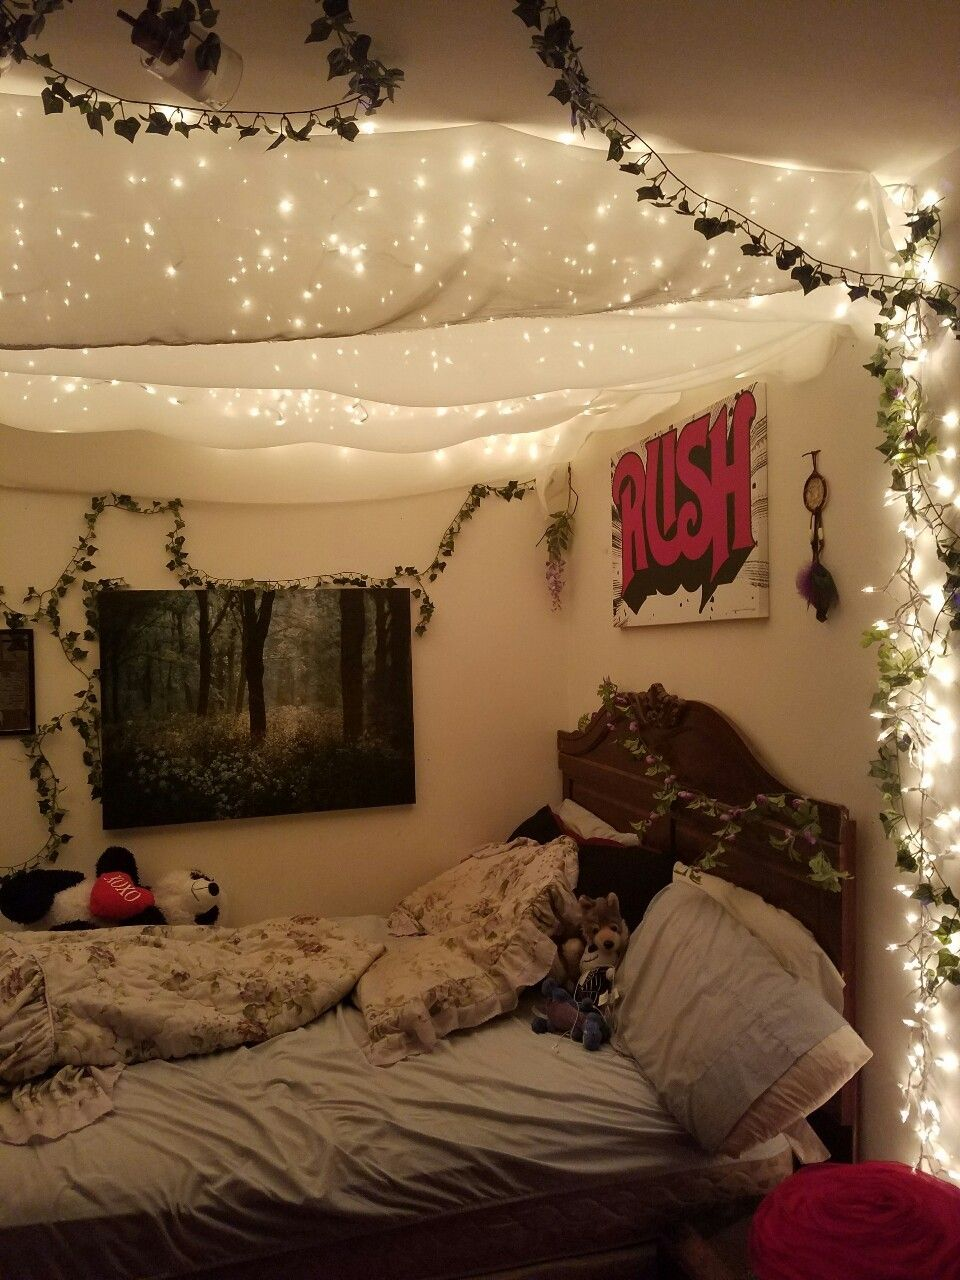 The Witchy Aesthetic The Seedling Witch So Like My Room Is Hella Aesthetic Bedroom Bedroom Design Cozy Room